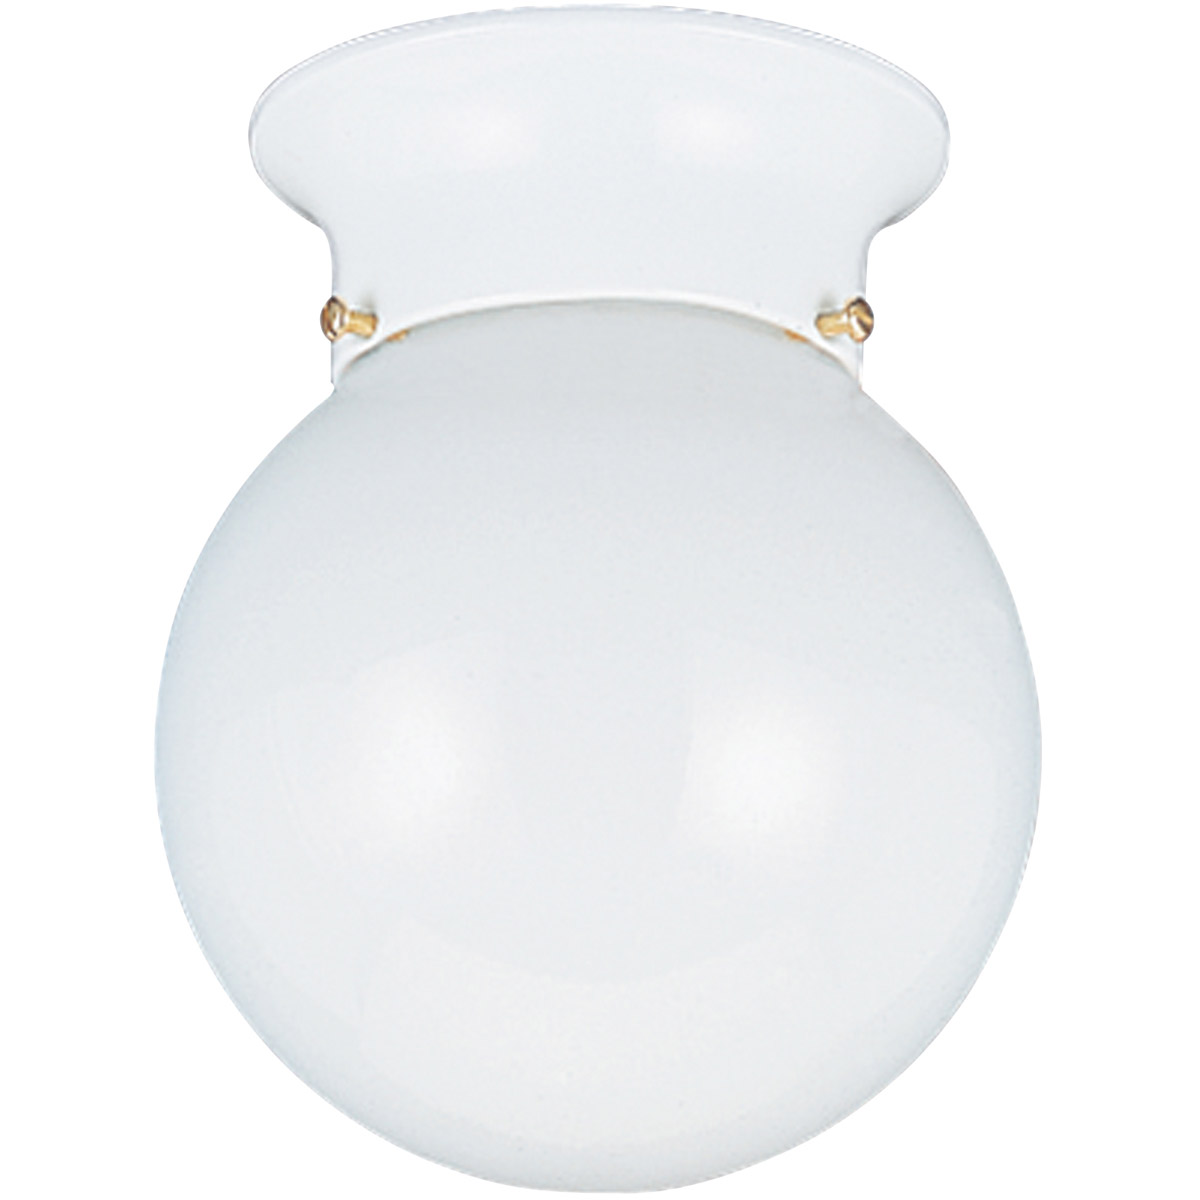 Sea Gull Lighting Tomkin 1 Light Flush Mount in White 5366-15